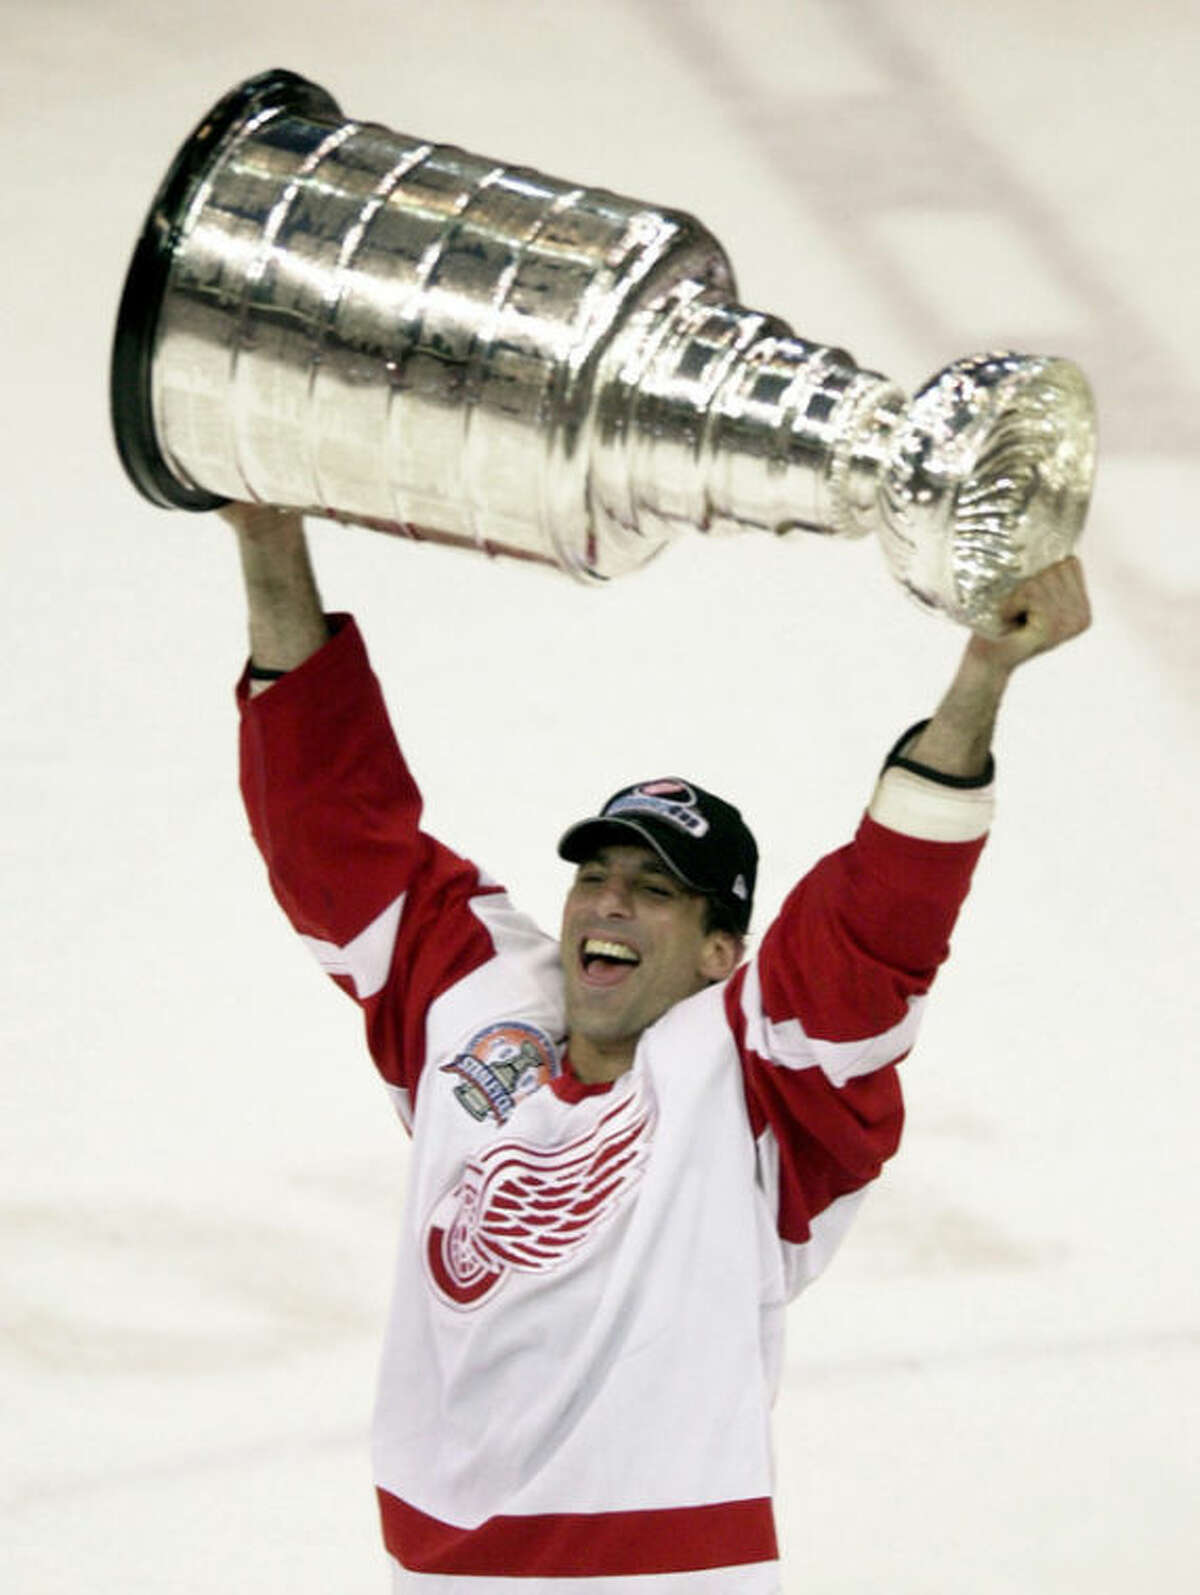 FILE - In this Jan. 8, 2008 file photo, Detroit Red Wings defenseman Chris Chelios skates with the Stanley Cup in Detroit after defeating the Carolina Hurricanes, in this June 13, 2002 file photo. Defensemen Scott Niedermayer and Chelios, along with forward Brendan Shanahan have been picked for the Hockey Hall of Fame. (AP Photo/Paul Sancya, file)